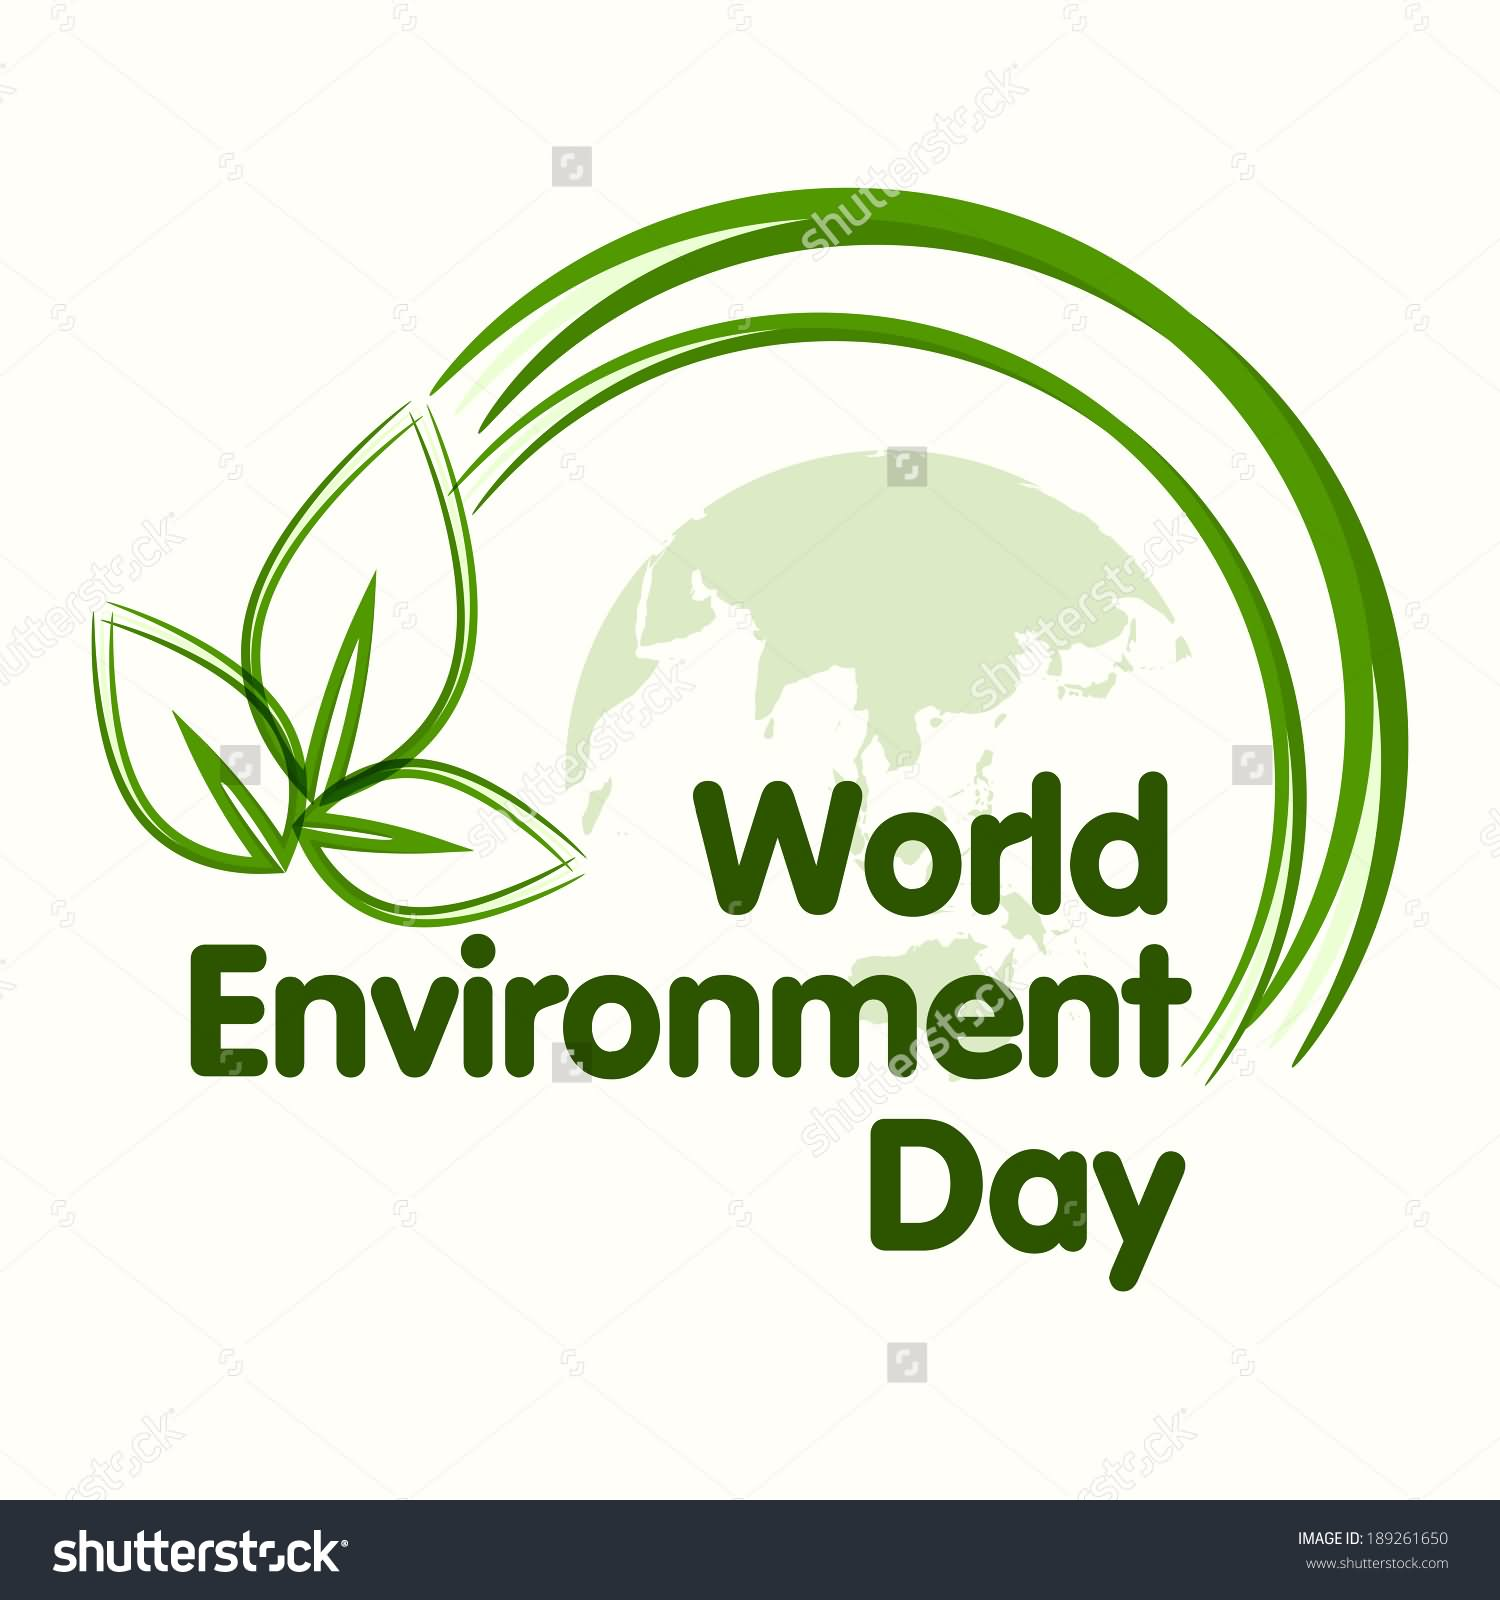 40 Most Wonderful World Environment Day 1500x1600